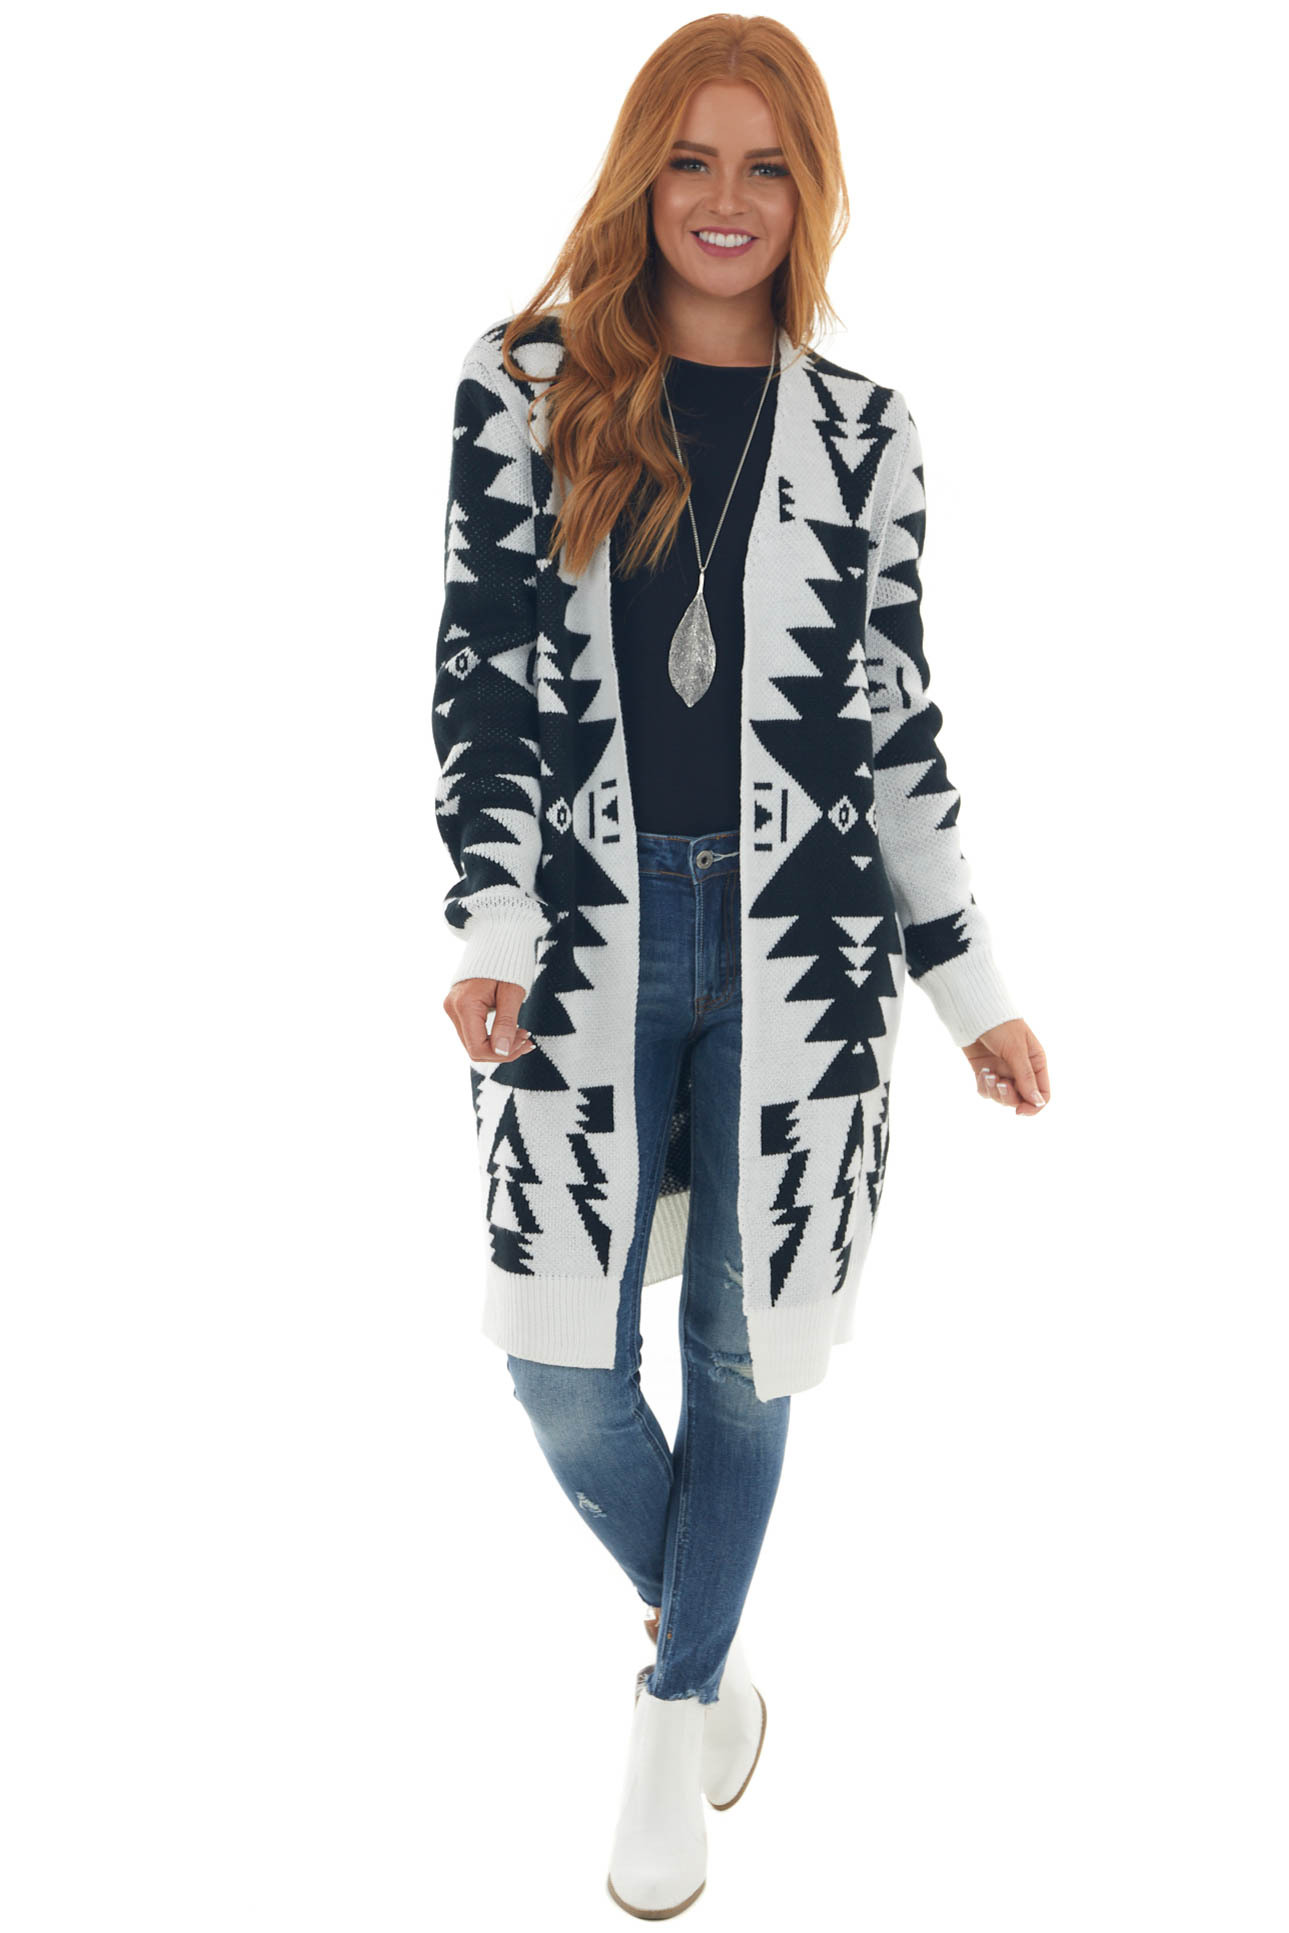 Off White Aztec Print Open Front Knit Cardigan